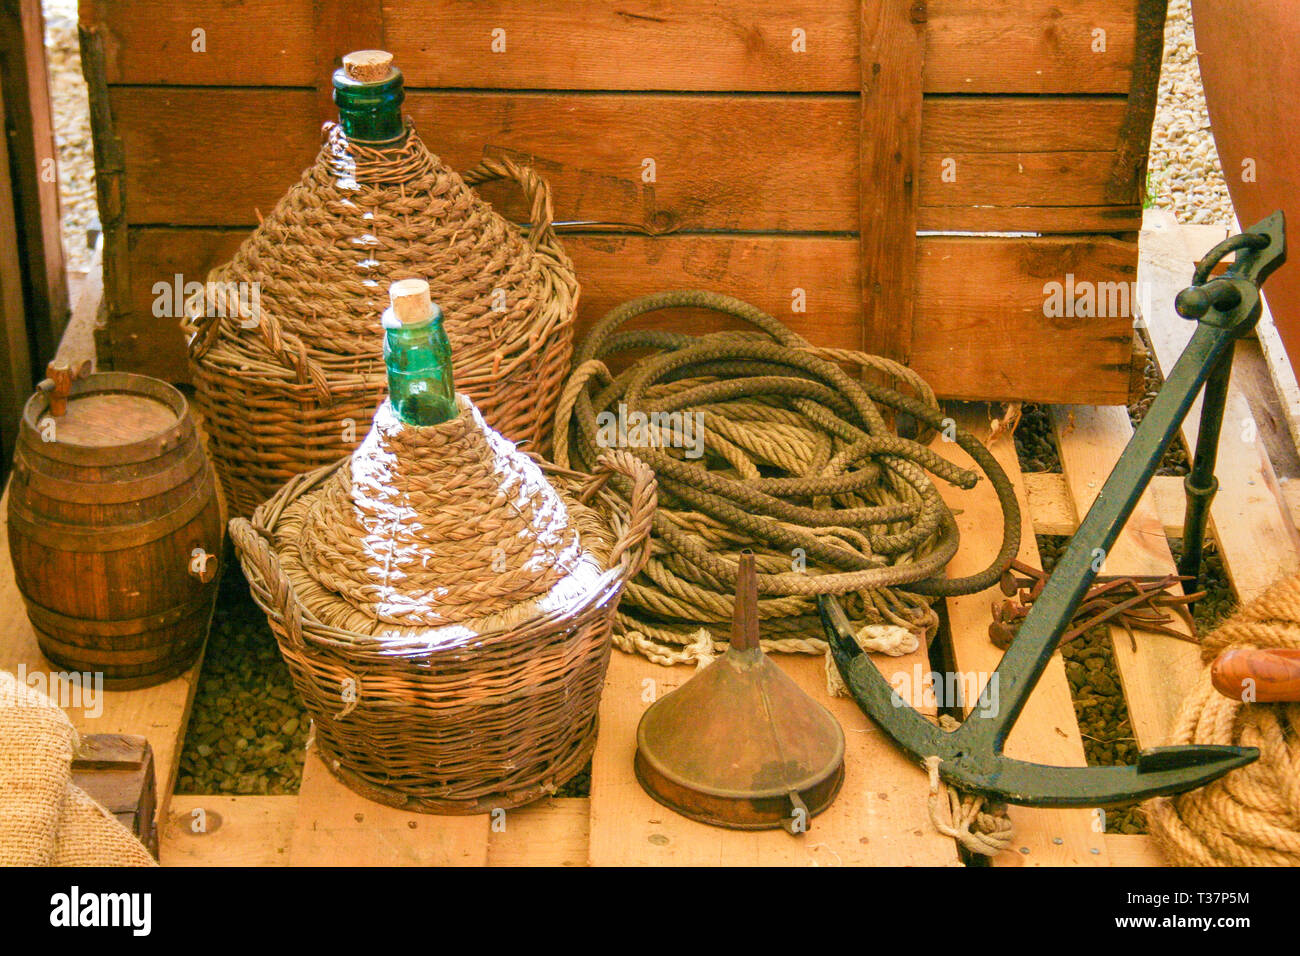 Composition with old wooden cart and wine flasks with old rope and anchor in Italy - Stock Image